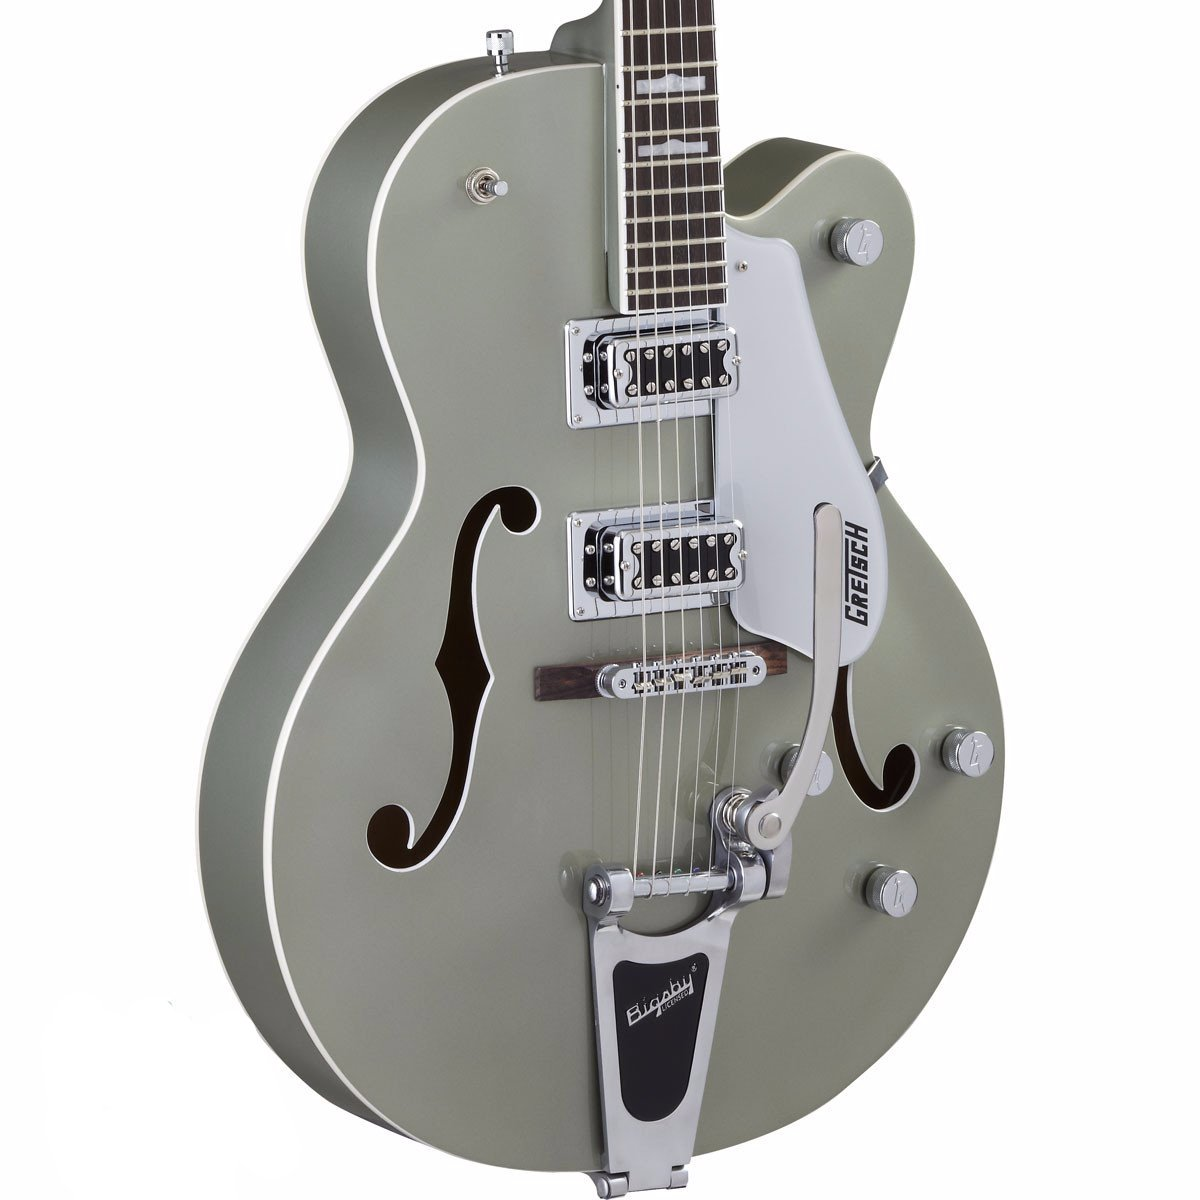 Gretsch G5420T Electromatic Hollow Body w/Bigsby - Aspen Green - Vintage Guitar Boutique - 4